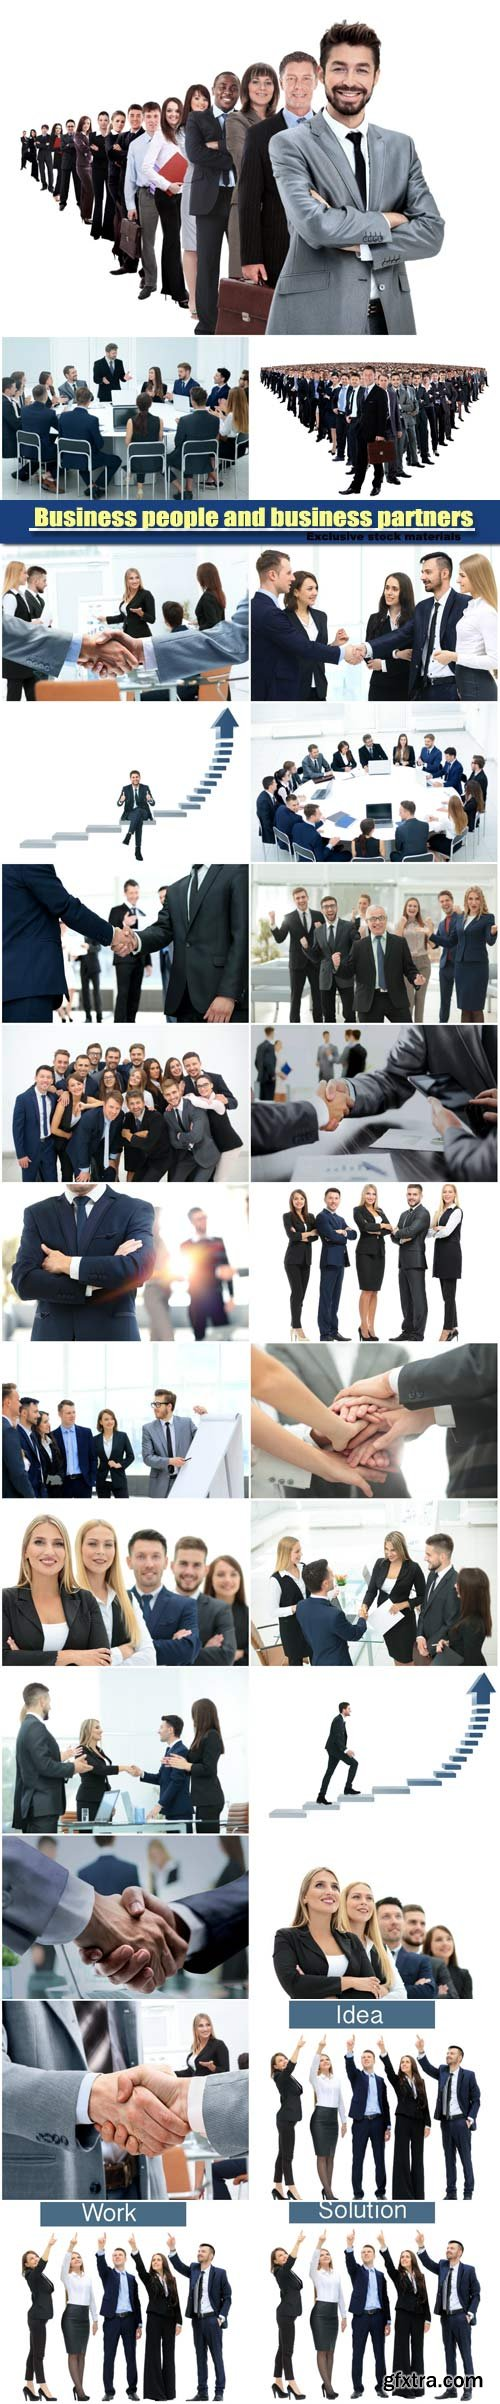 Business people and business partners greeting each other with handshake, conference